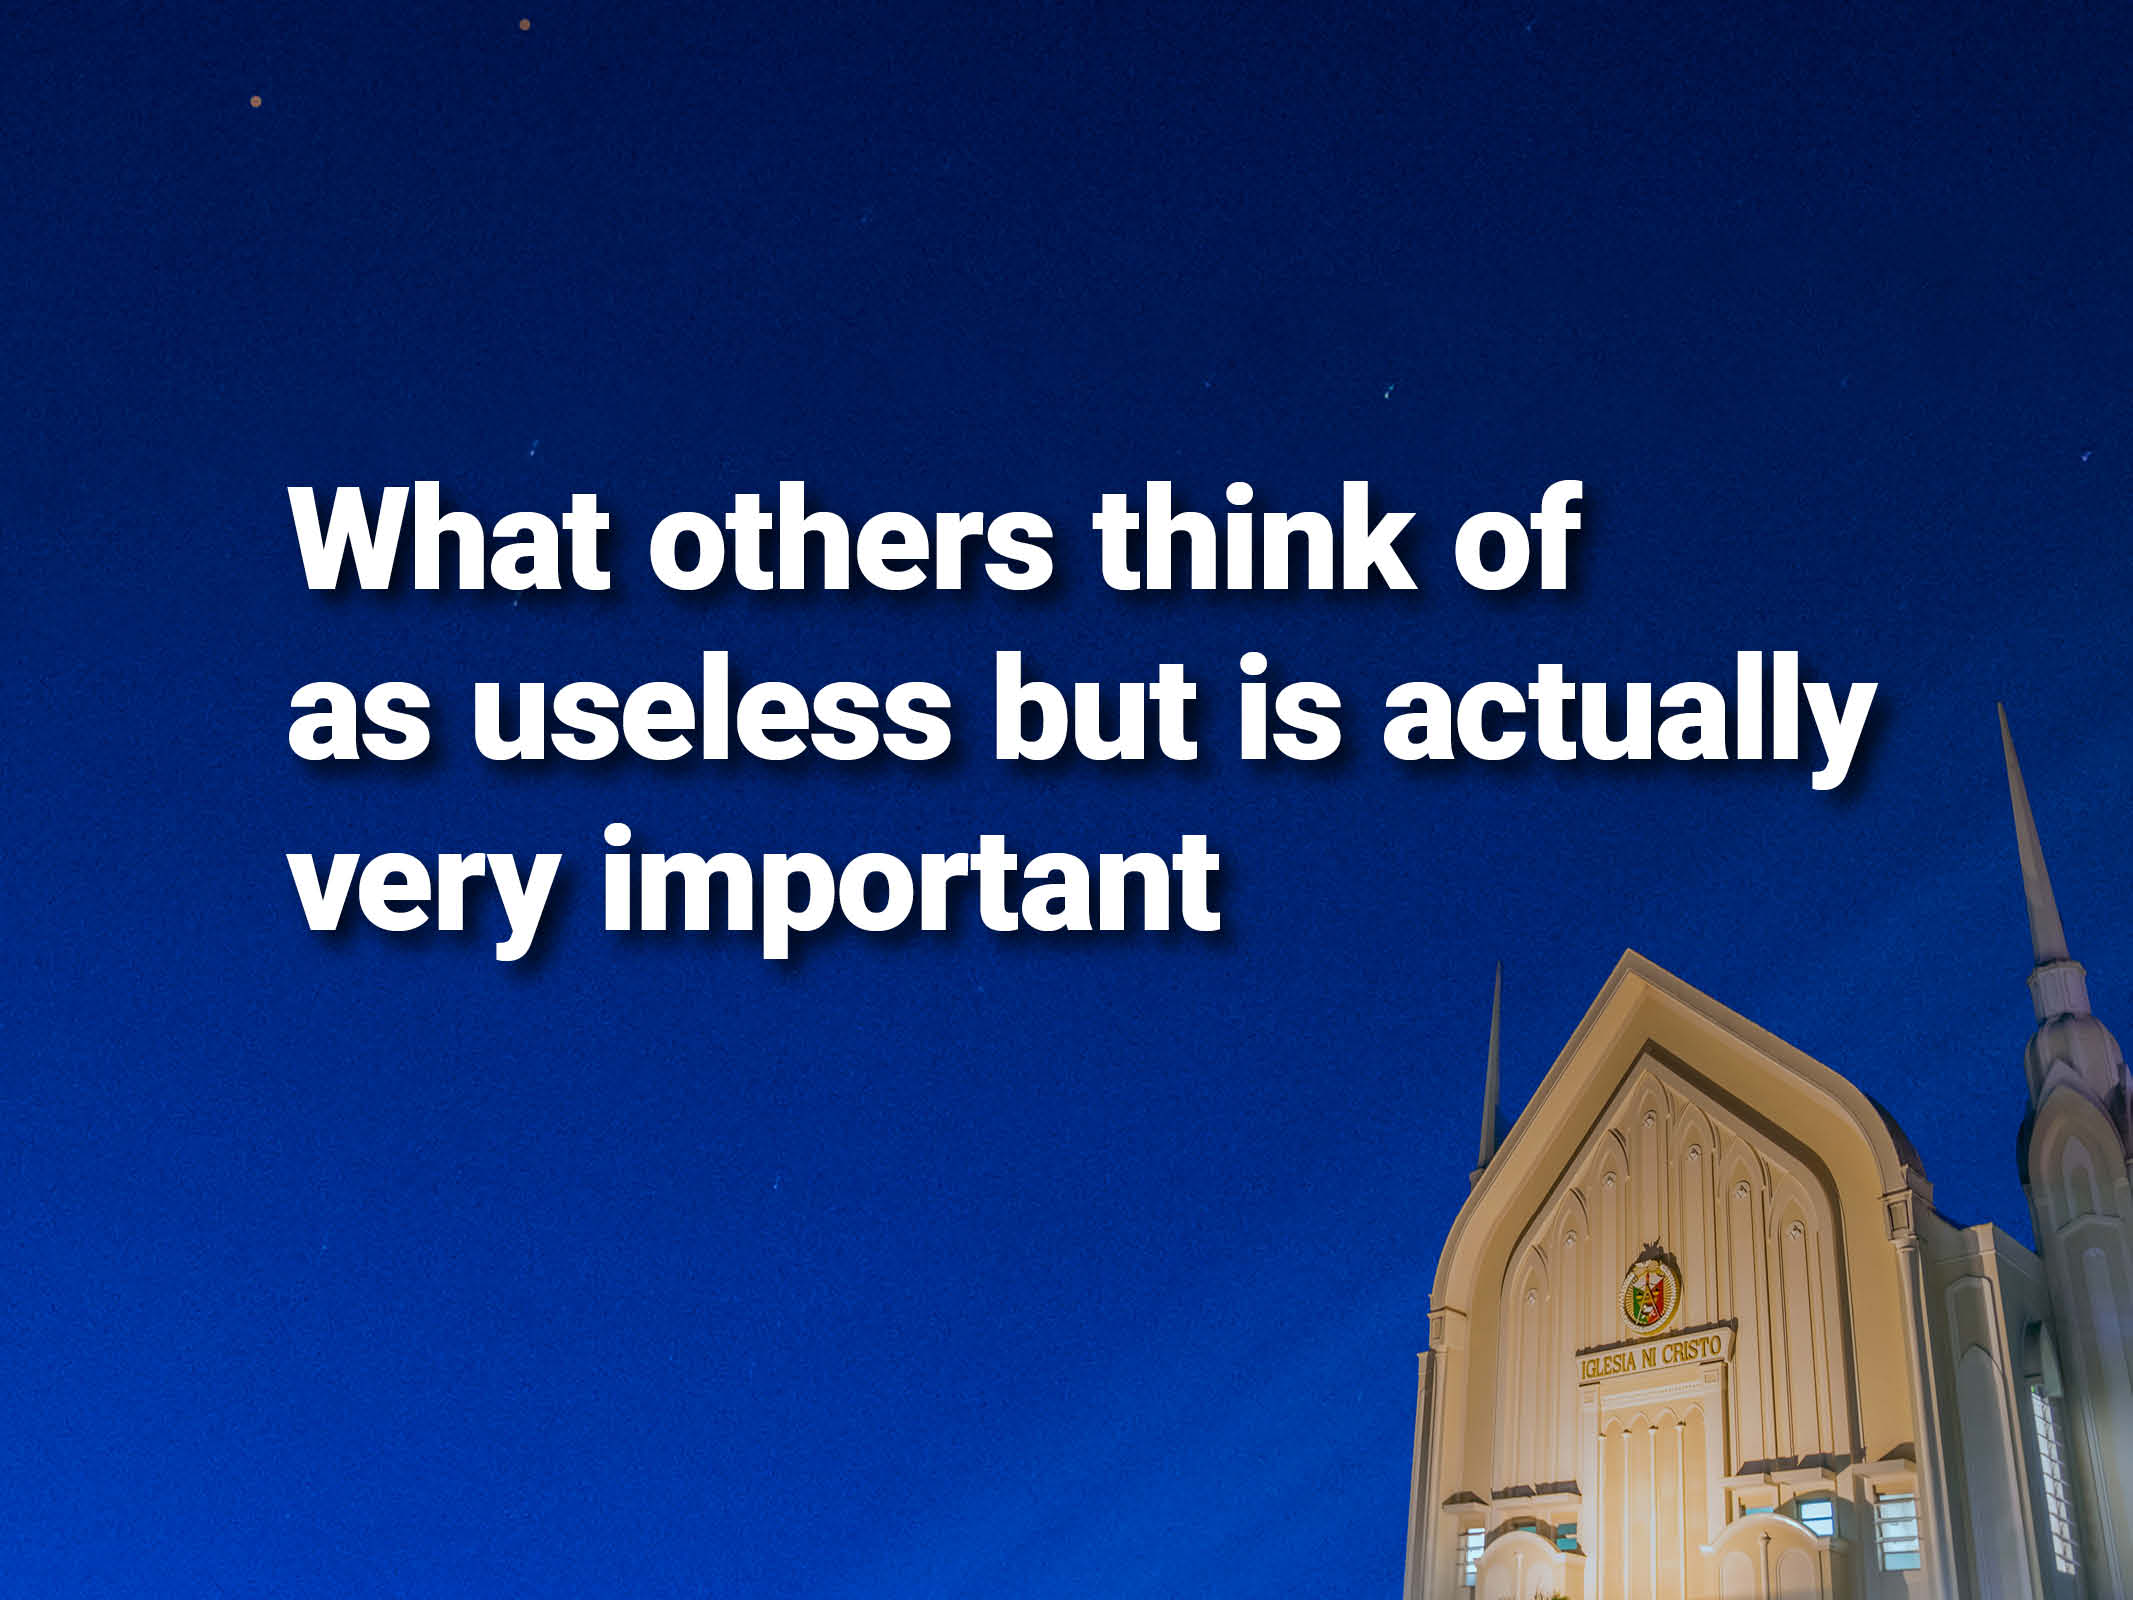 What others think of as useless but is actually very important